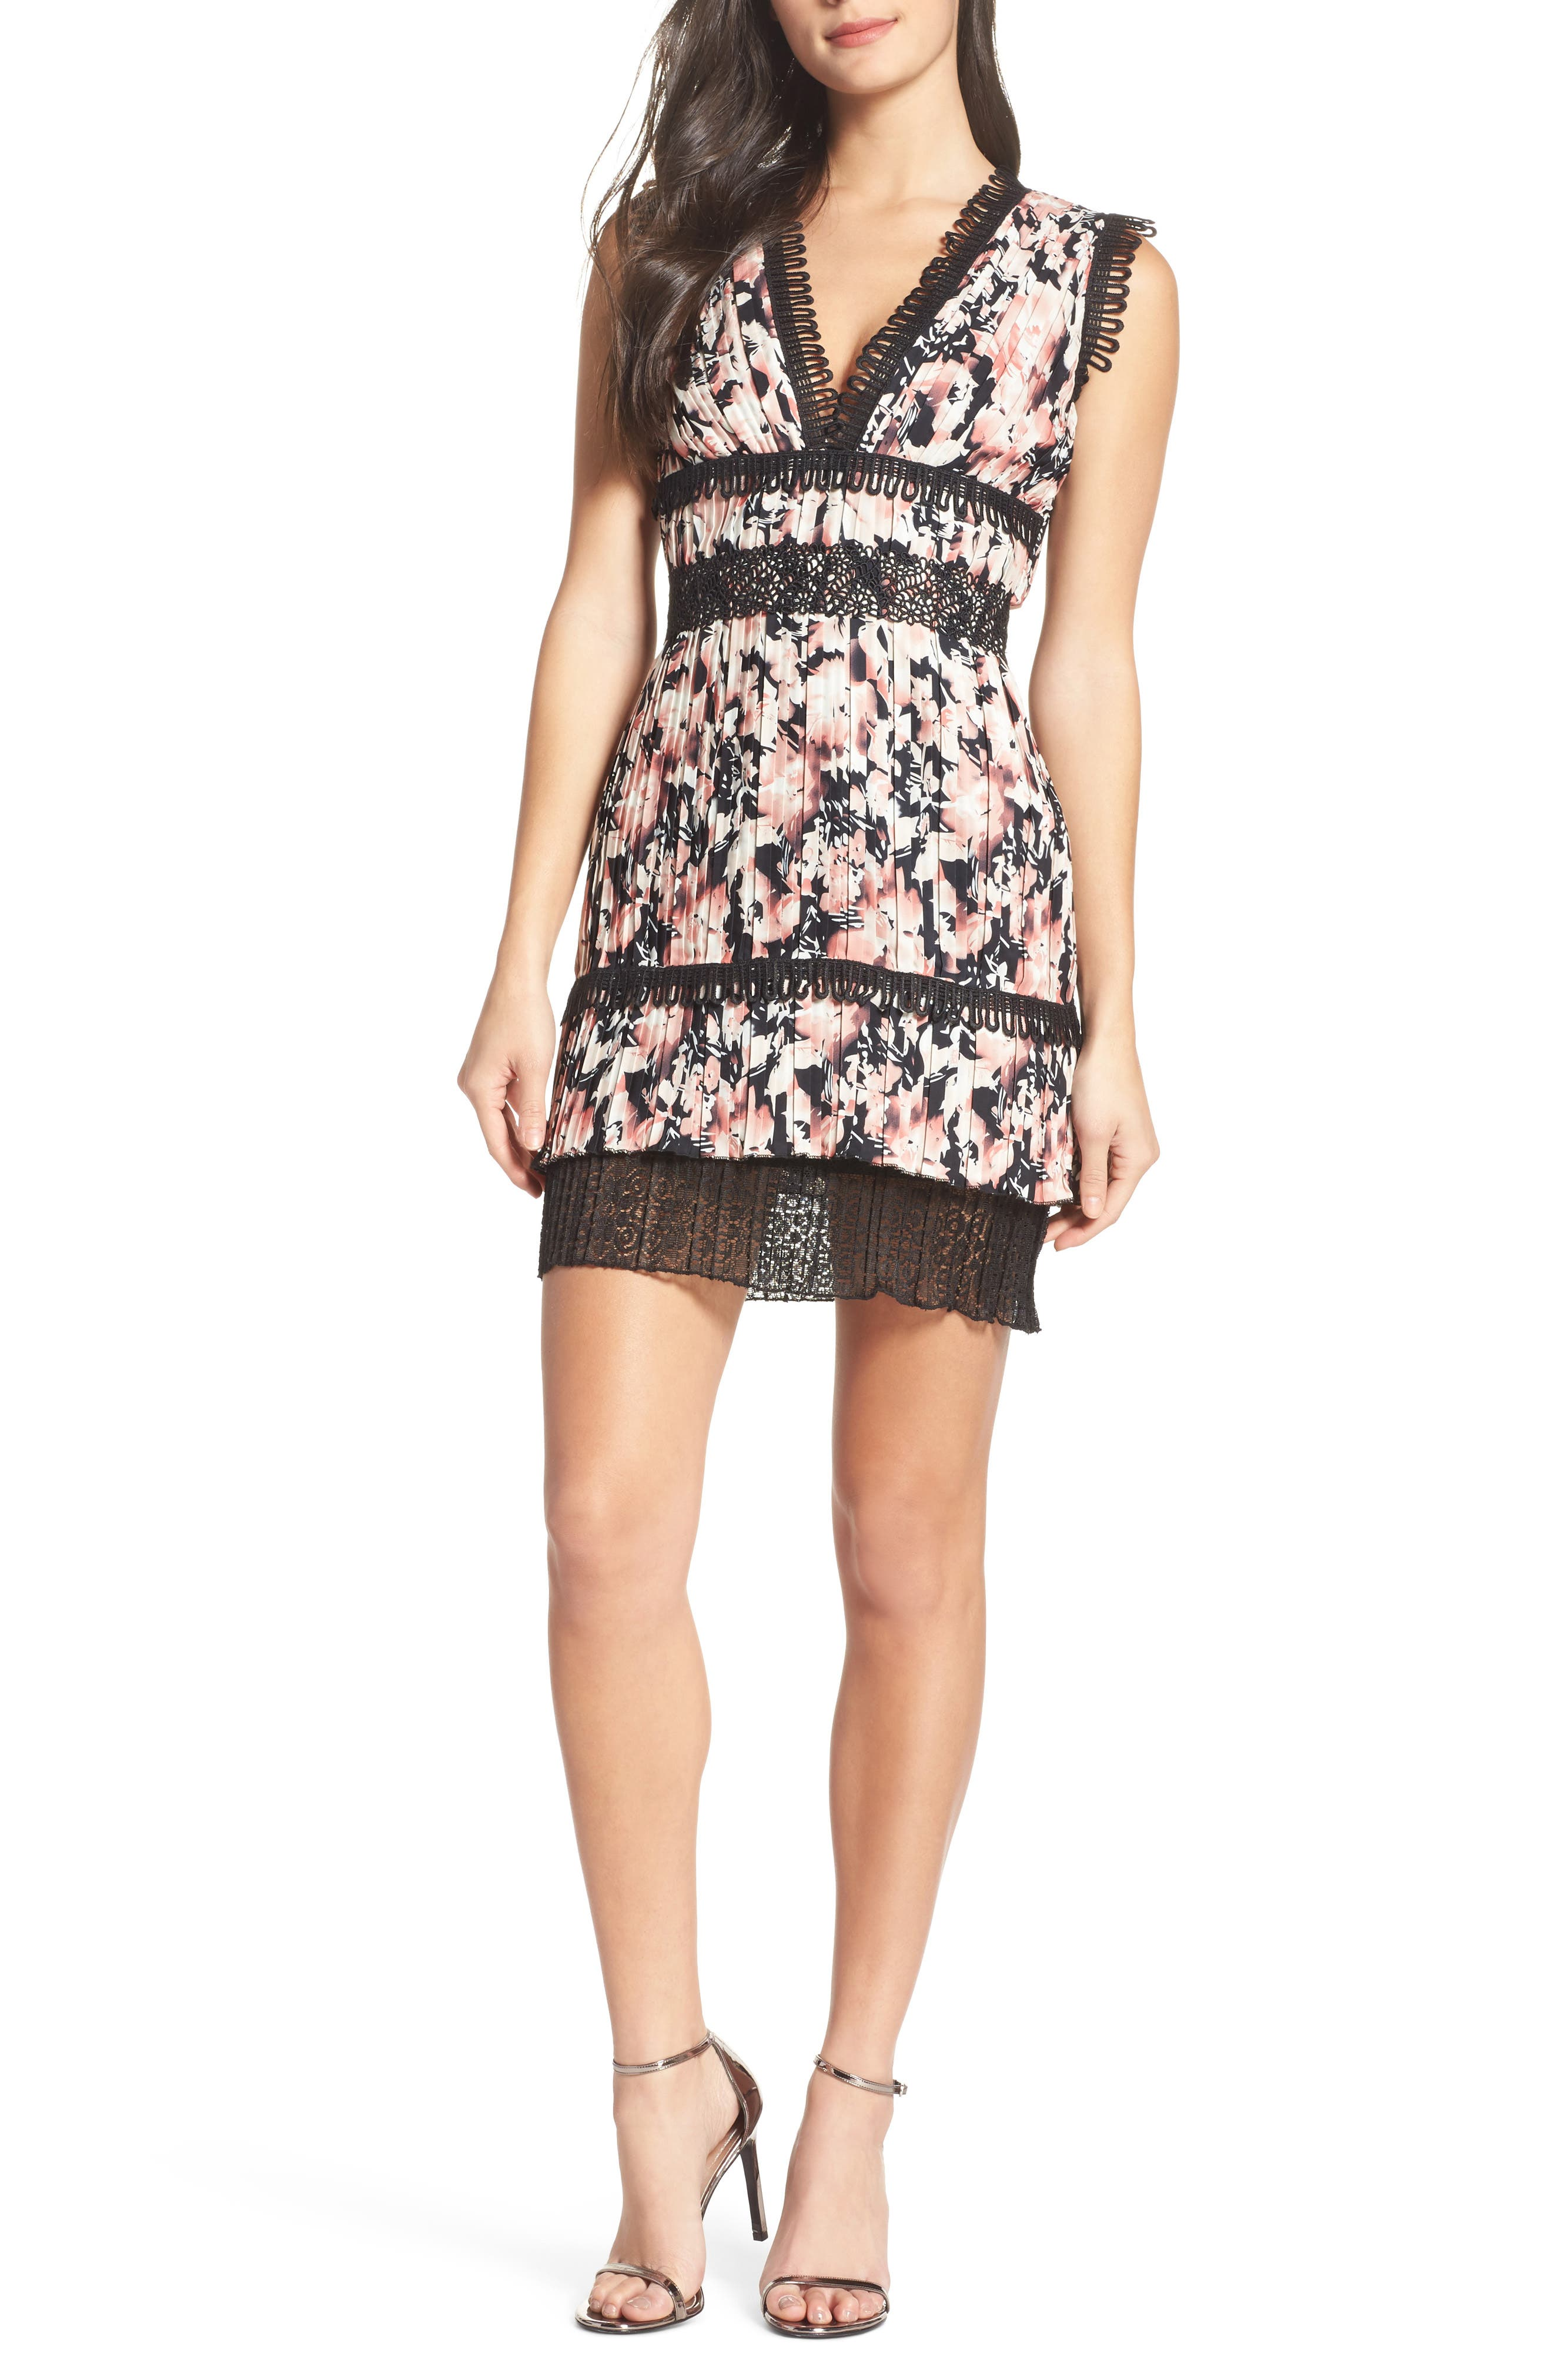 Alternate Image 1 Selected - Foxiedox Jasmine Floral Pleated Fit & Flare Dress